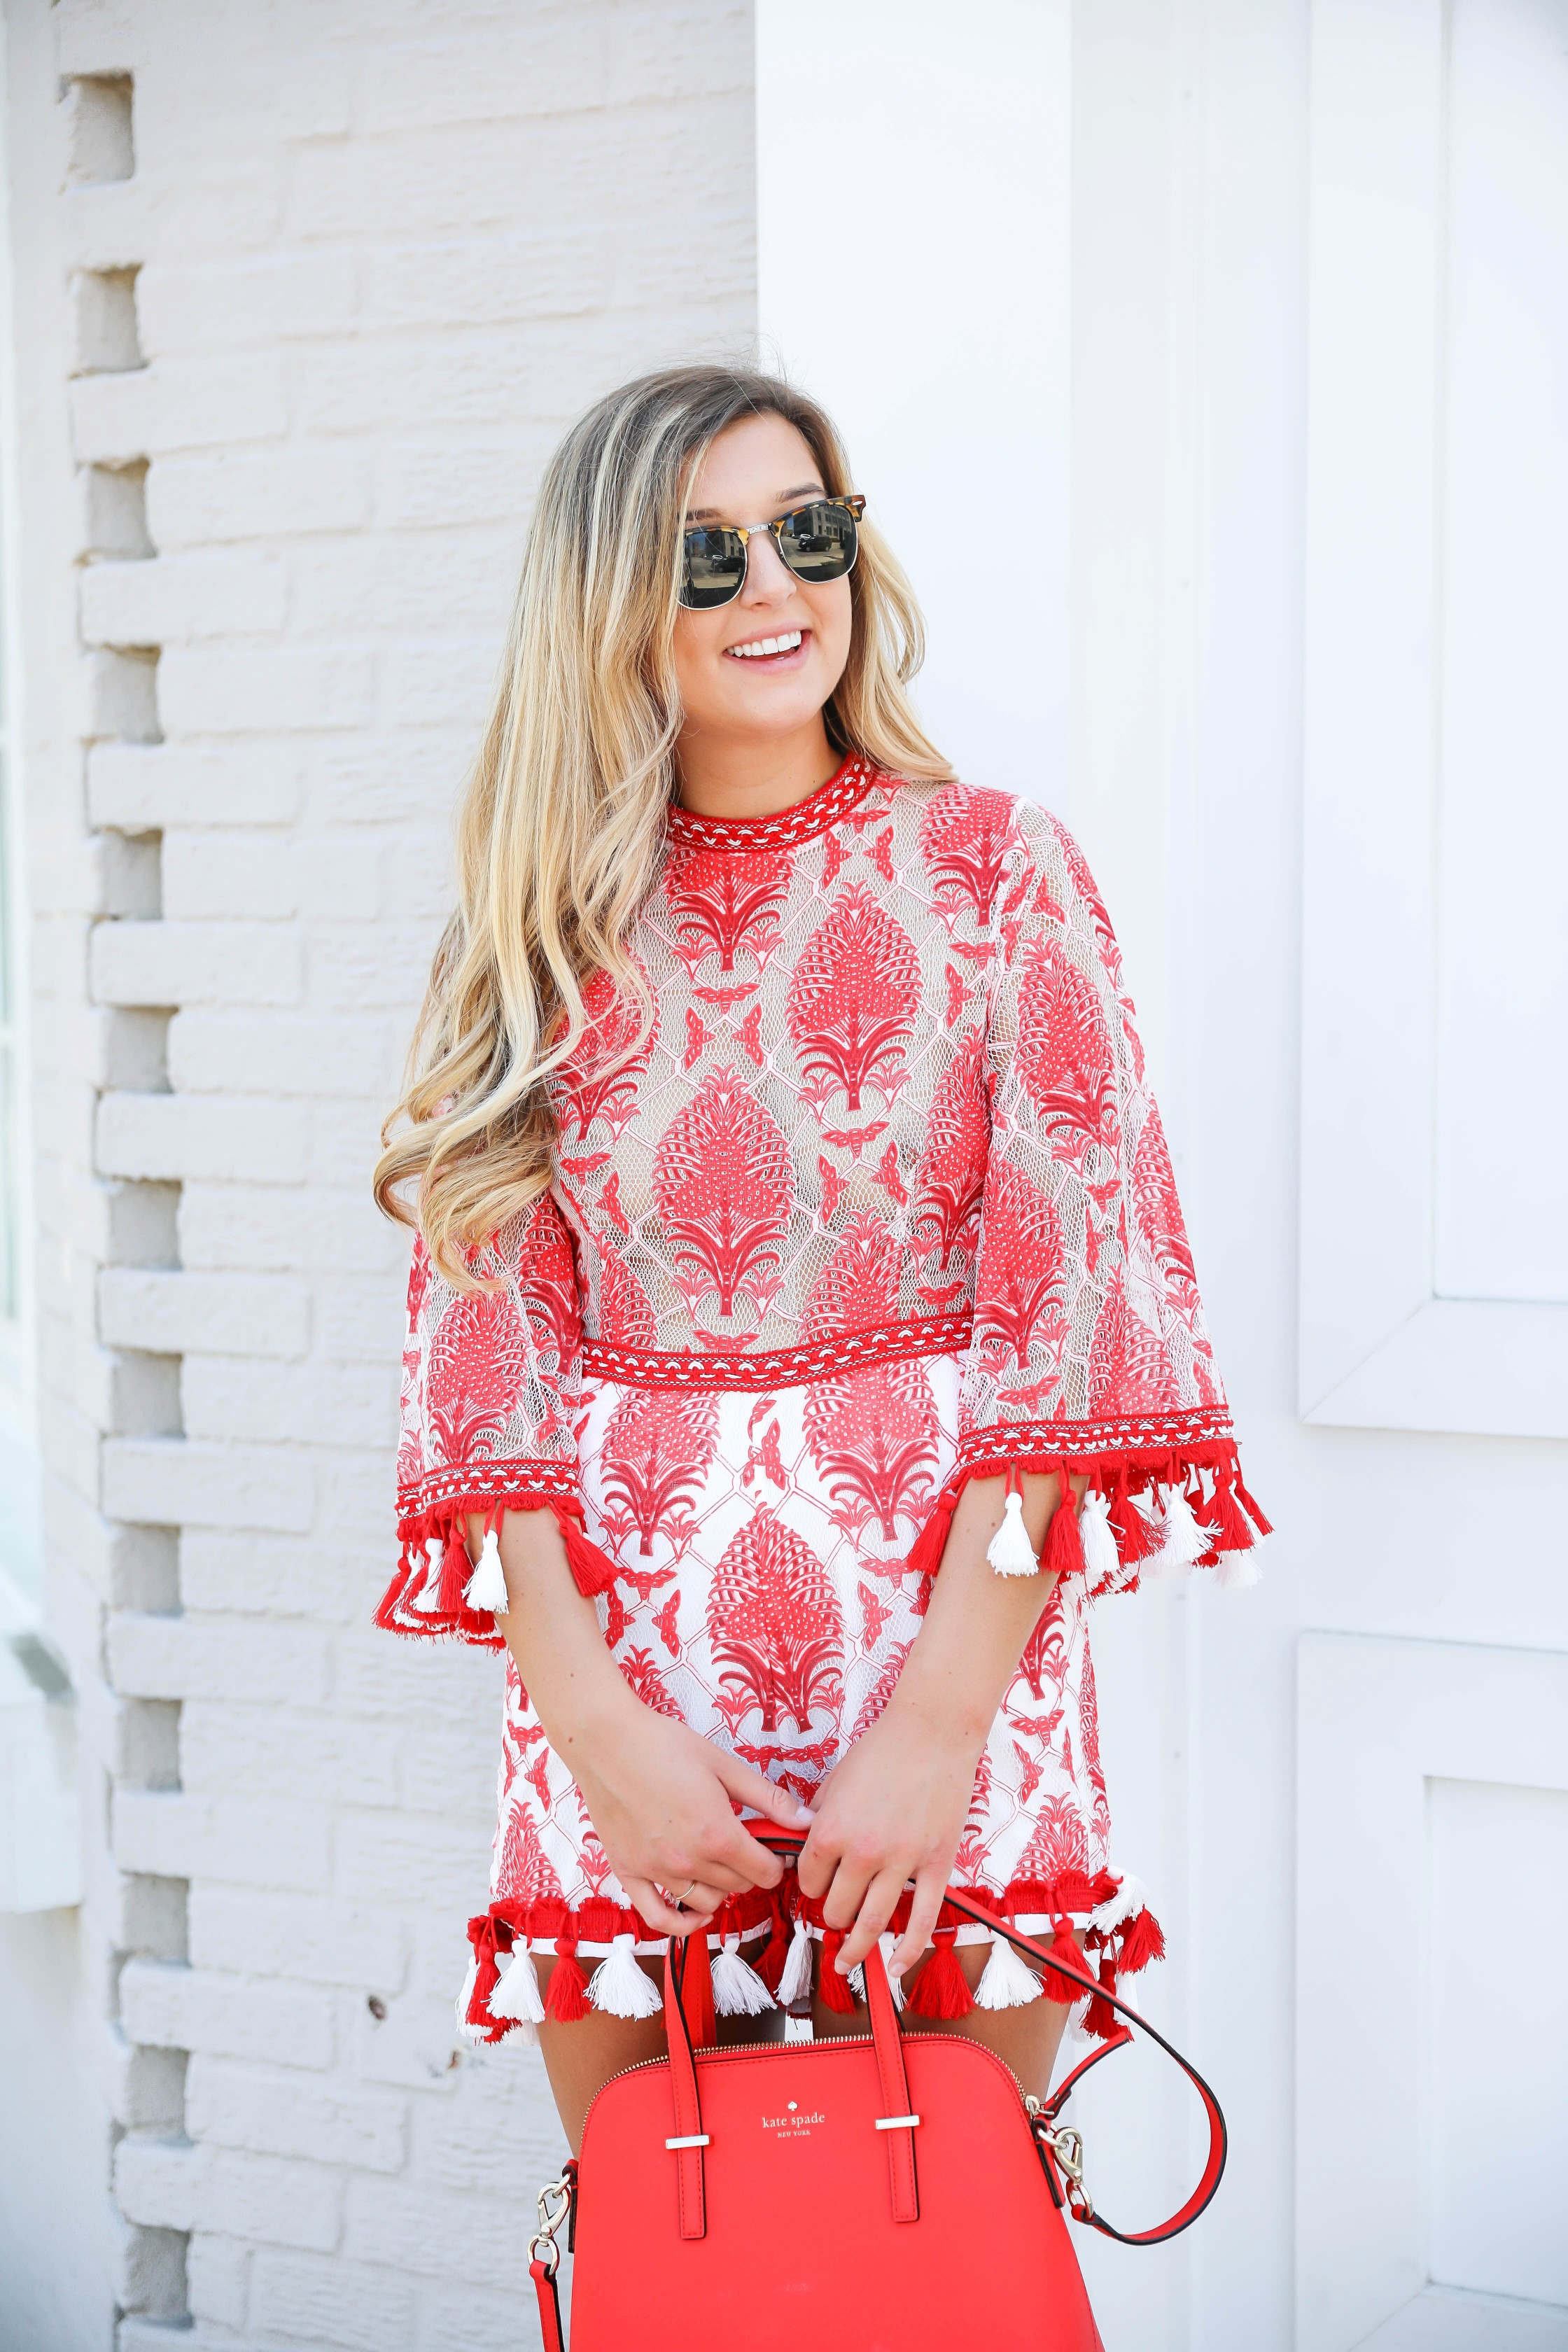 Red and white tassel lace romper from ebay! This is the perfect summer romper, I love the tassels around the sleeves and legs! How cute would this be on the beach? Kate spade red purse styled with this romper! Details on kansas city fashion blog daily dose of charm by lauren lindmark